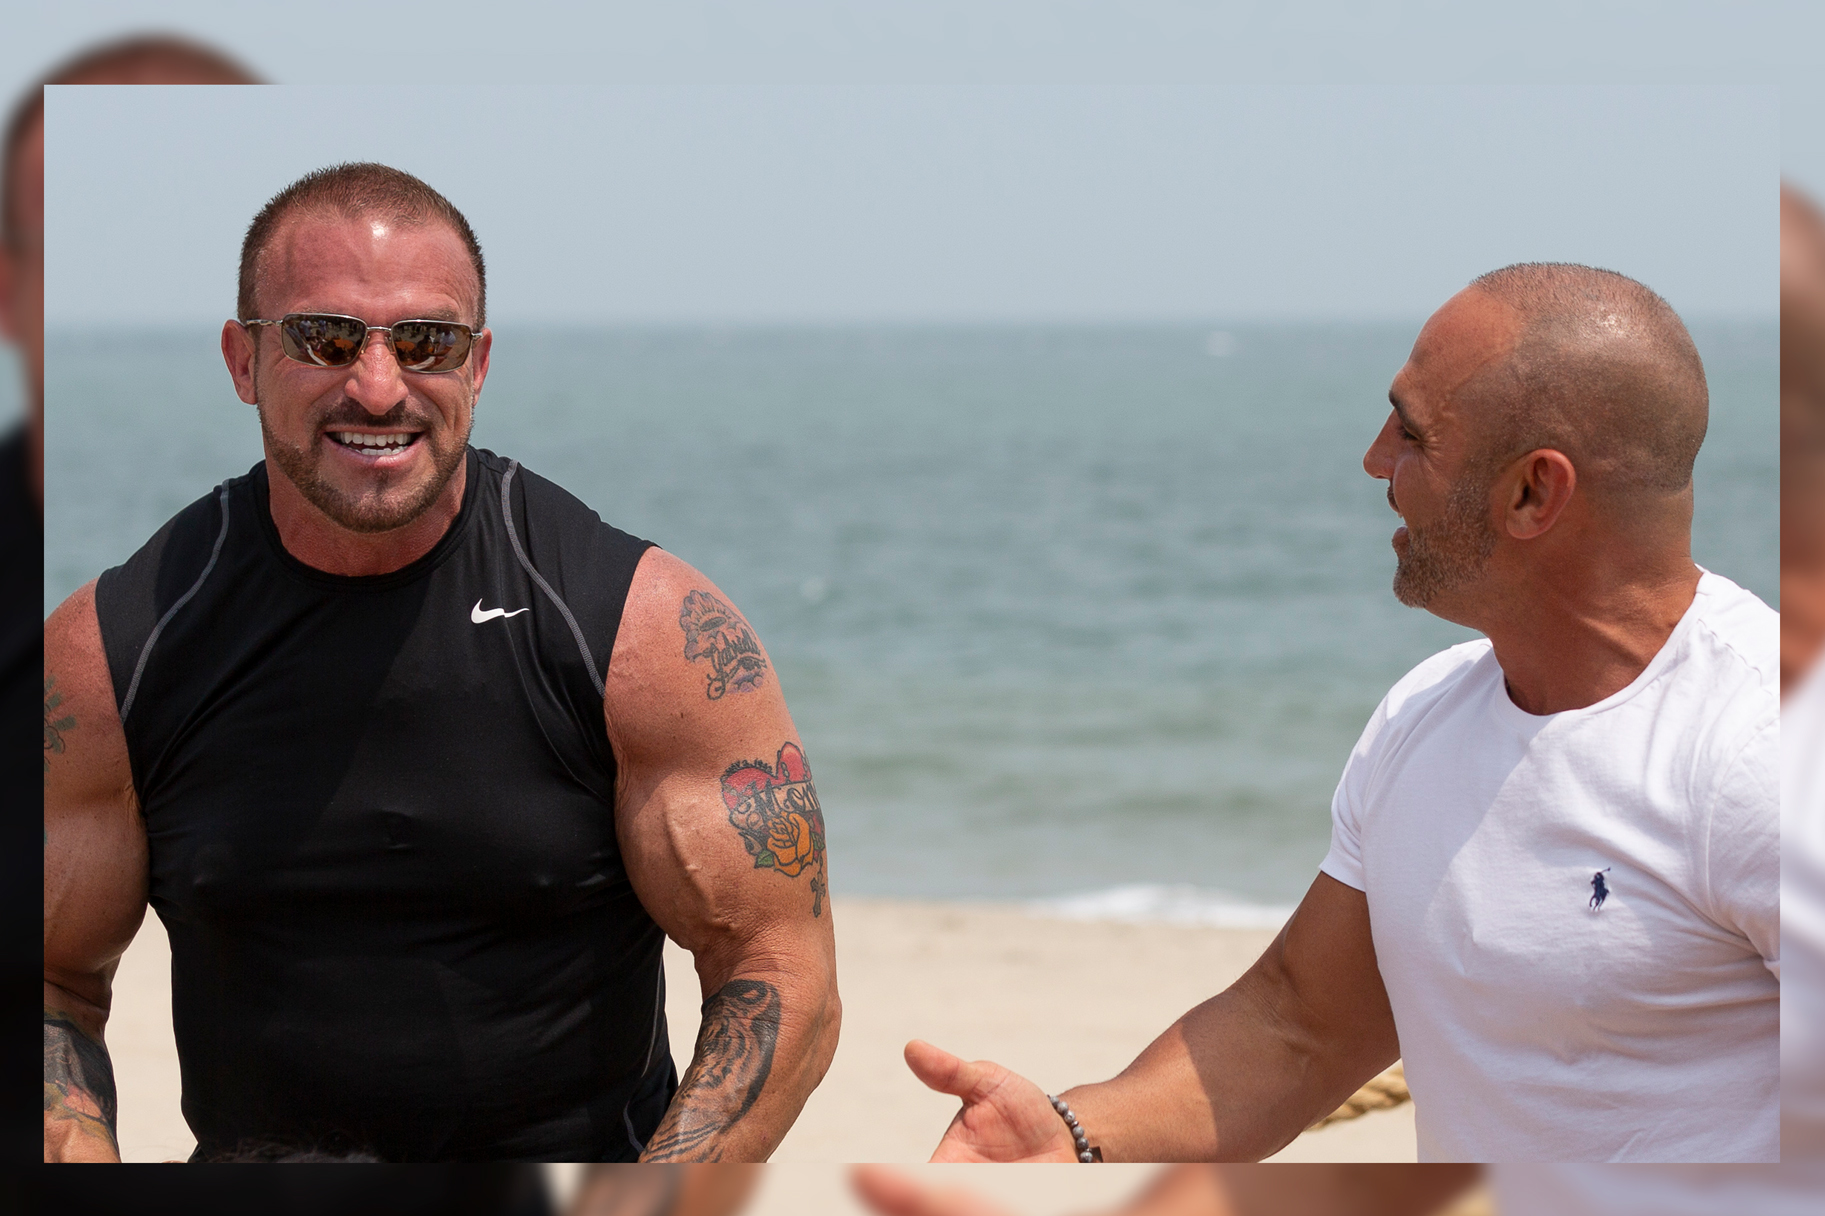 Joe Gorga Frank Catania Friendship